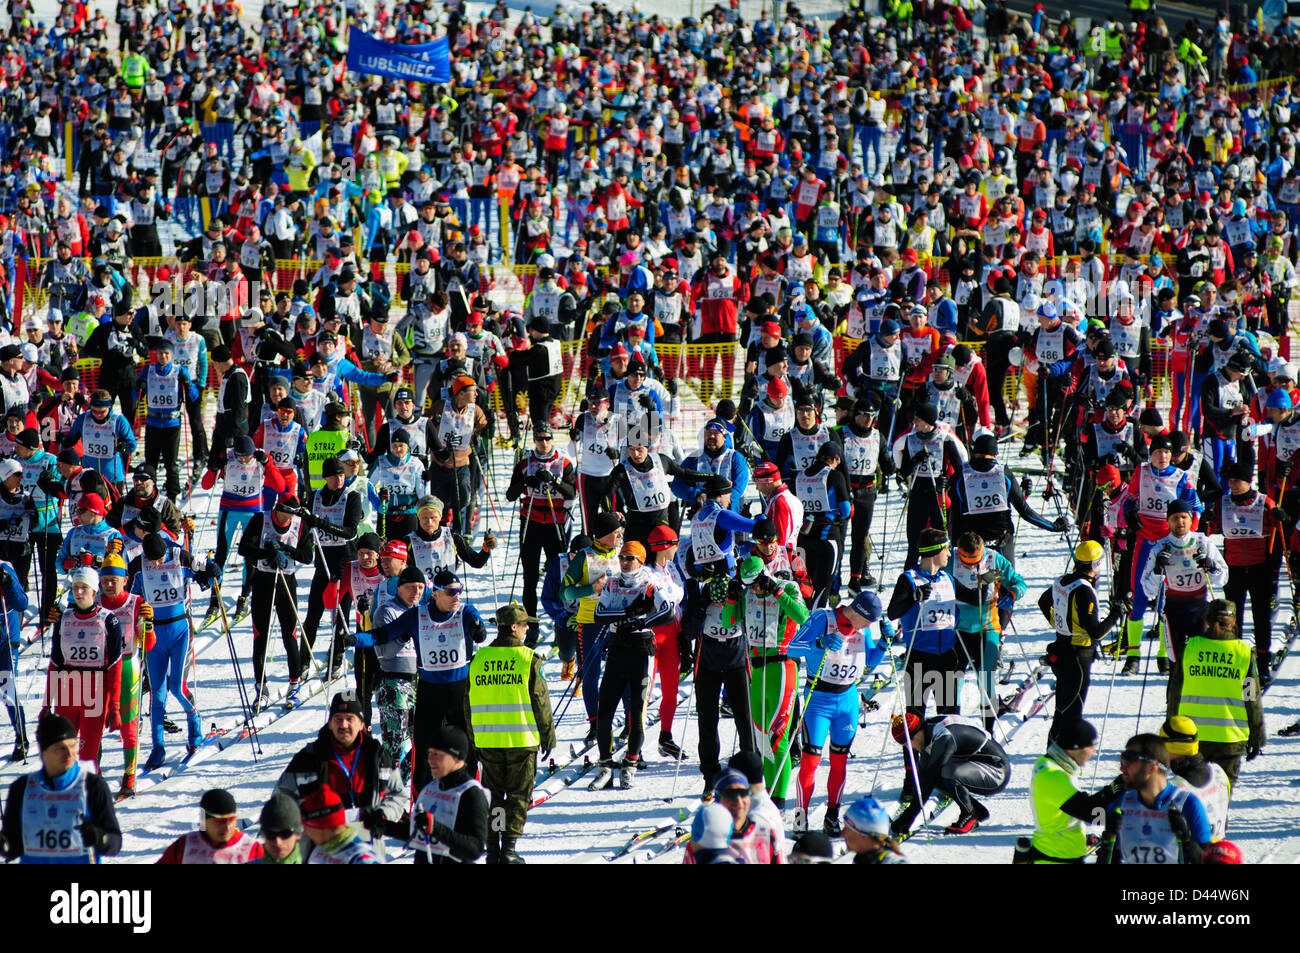 Participants moments before the start of the Bieg Piastow cross-country race, Jakuszyce, Poland. - Stock Image